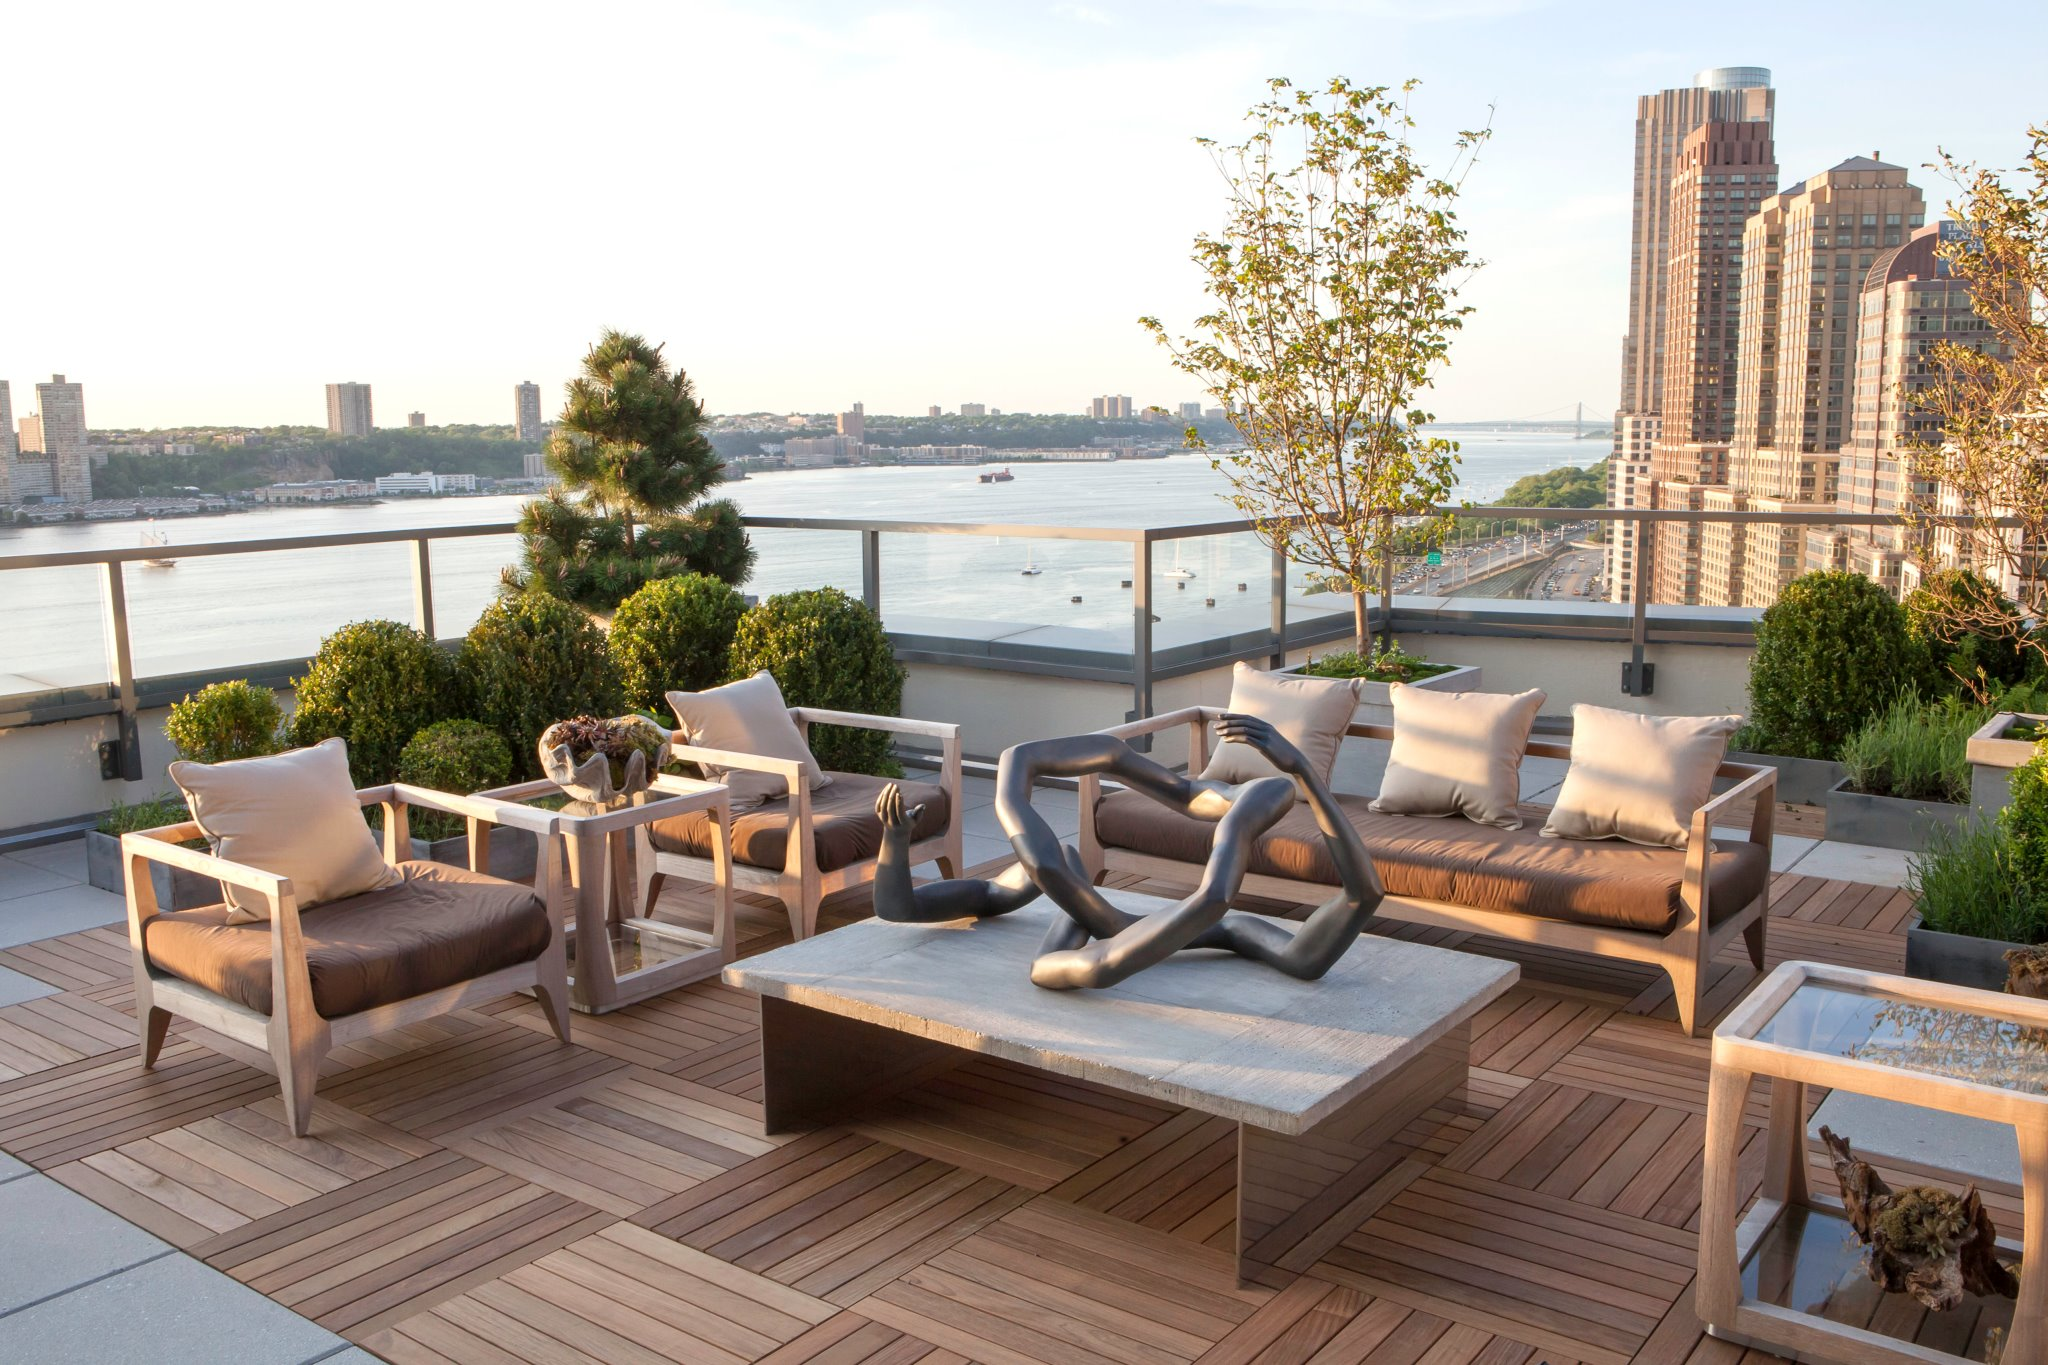 » Cool & Unusual RoofDecks